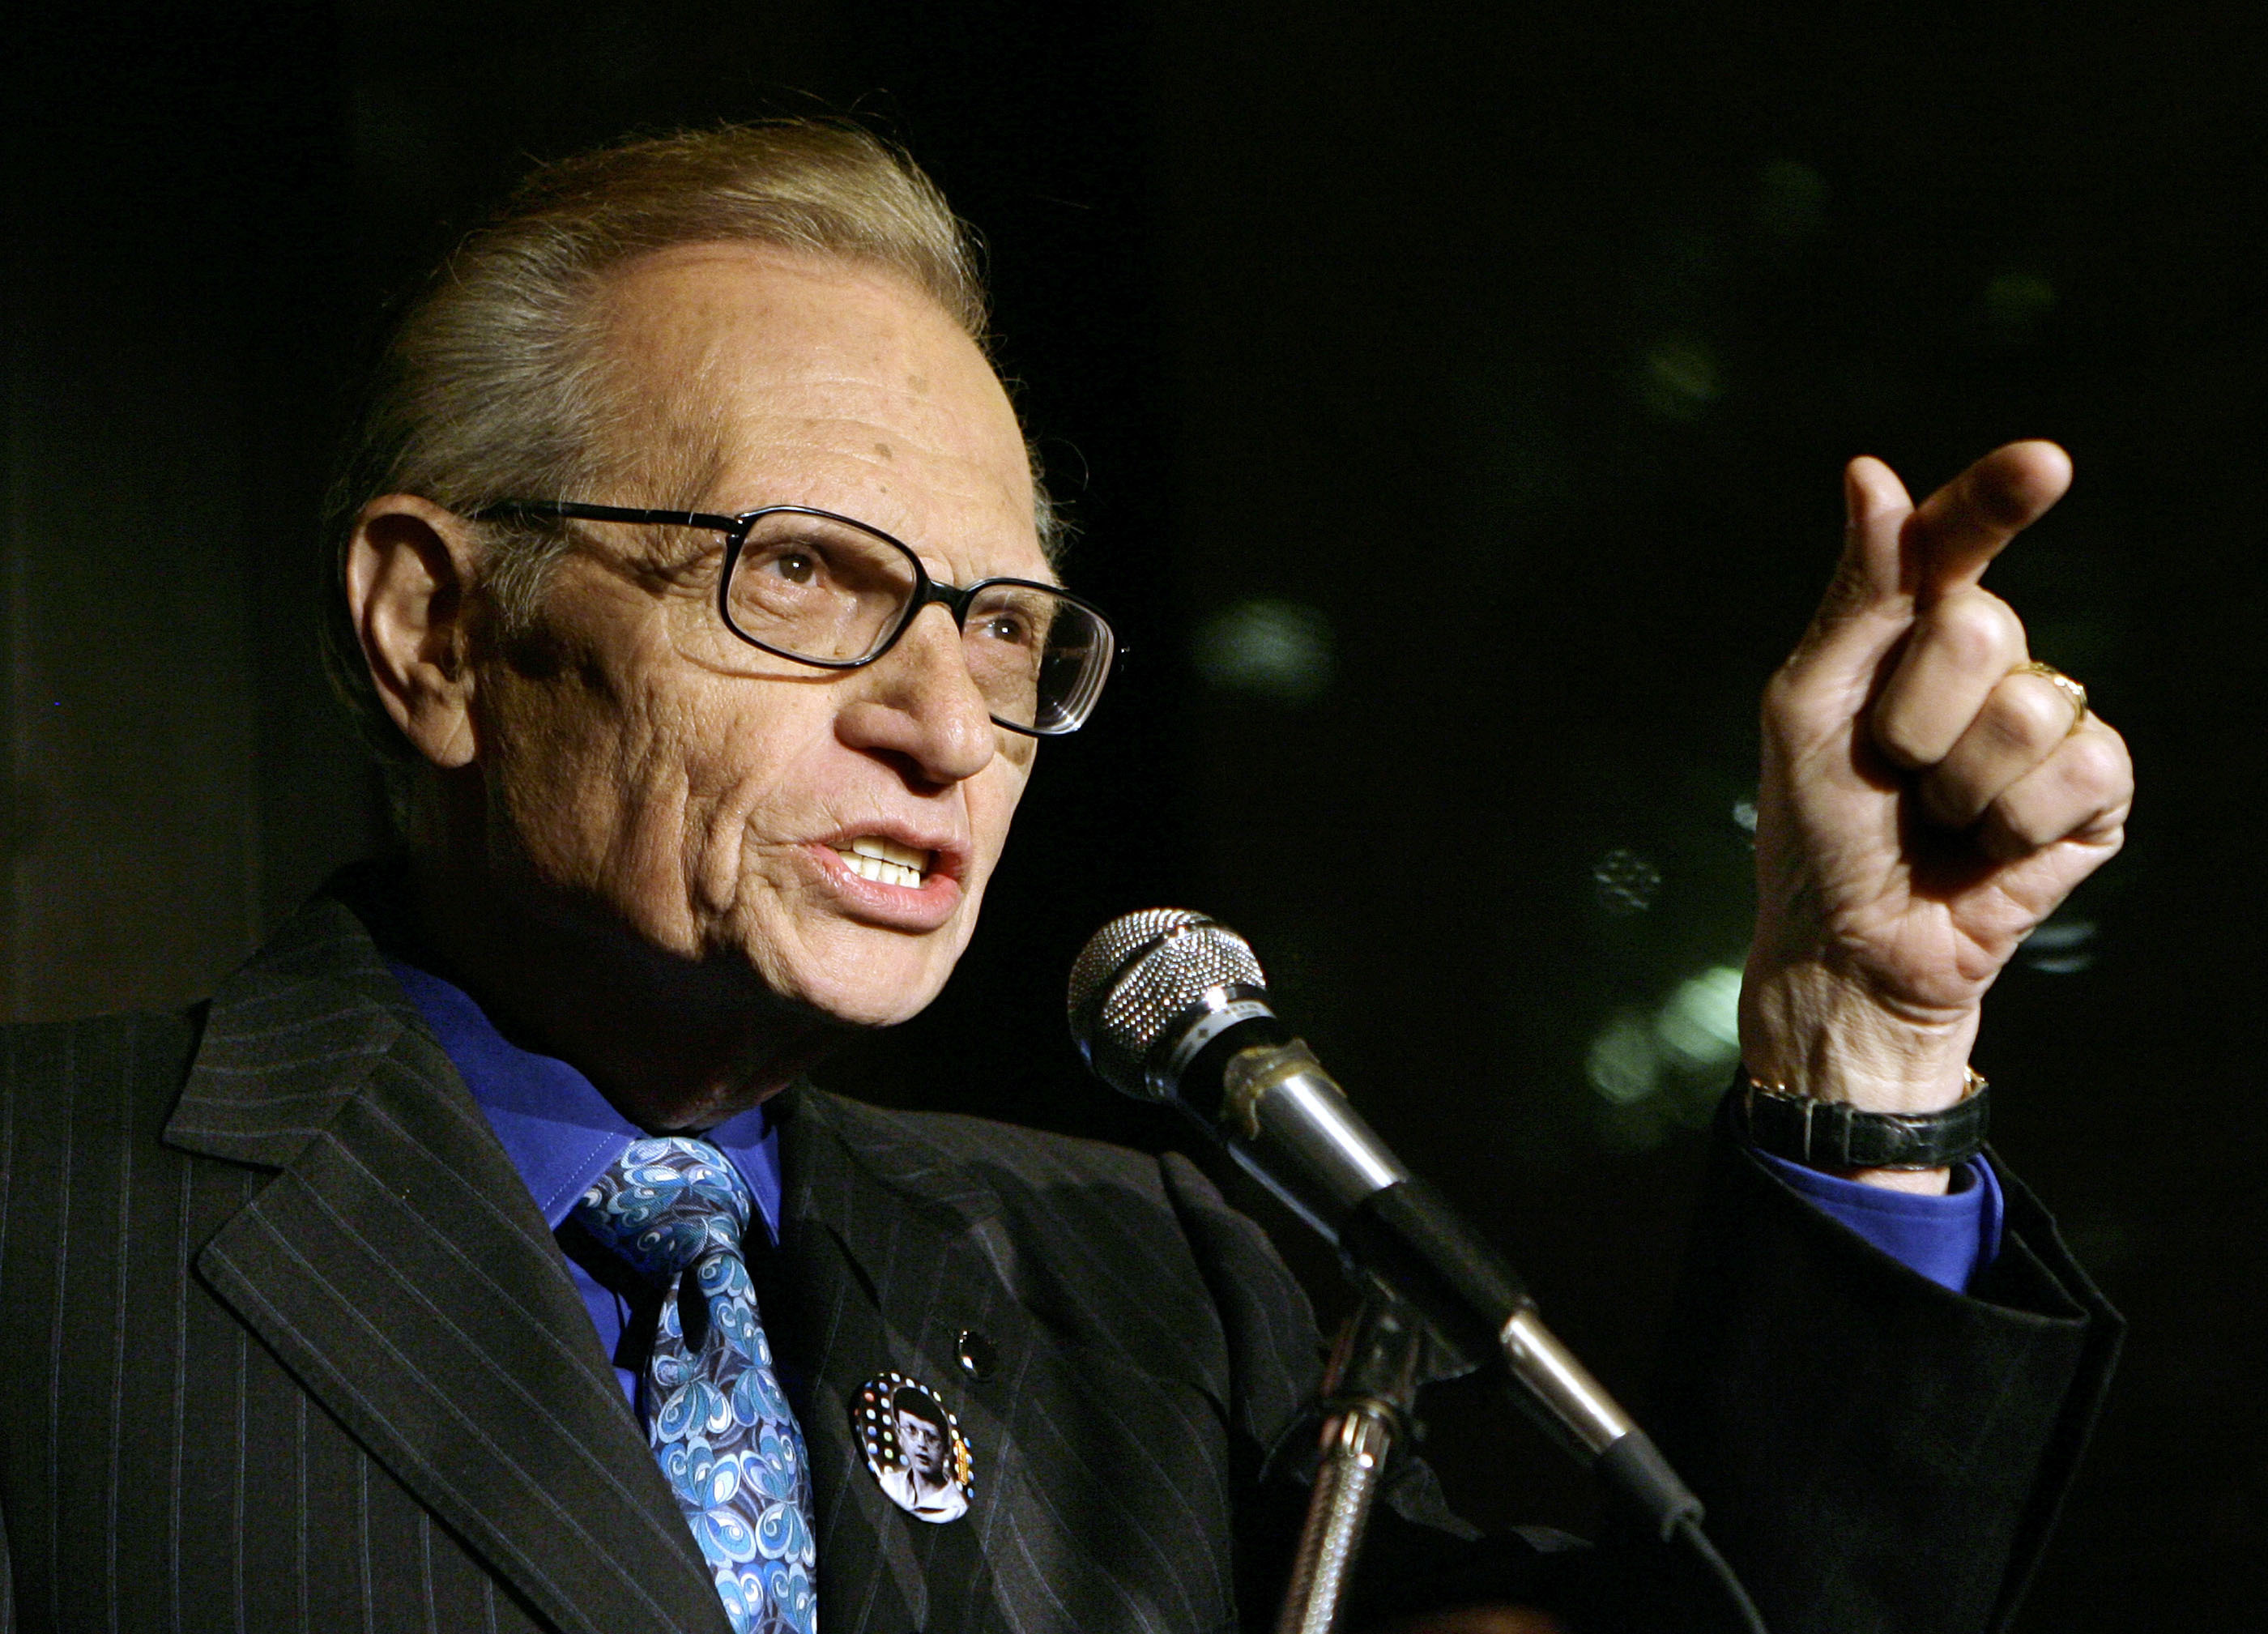 In this April 18, 2007 file photo, Larry King speaks to guests at a party held by CNN, celebrating King's fifty years of broadcasting in New York.